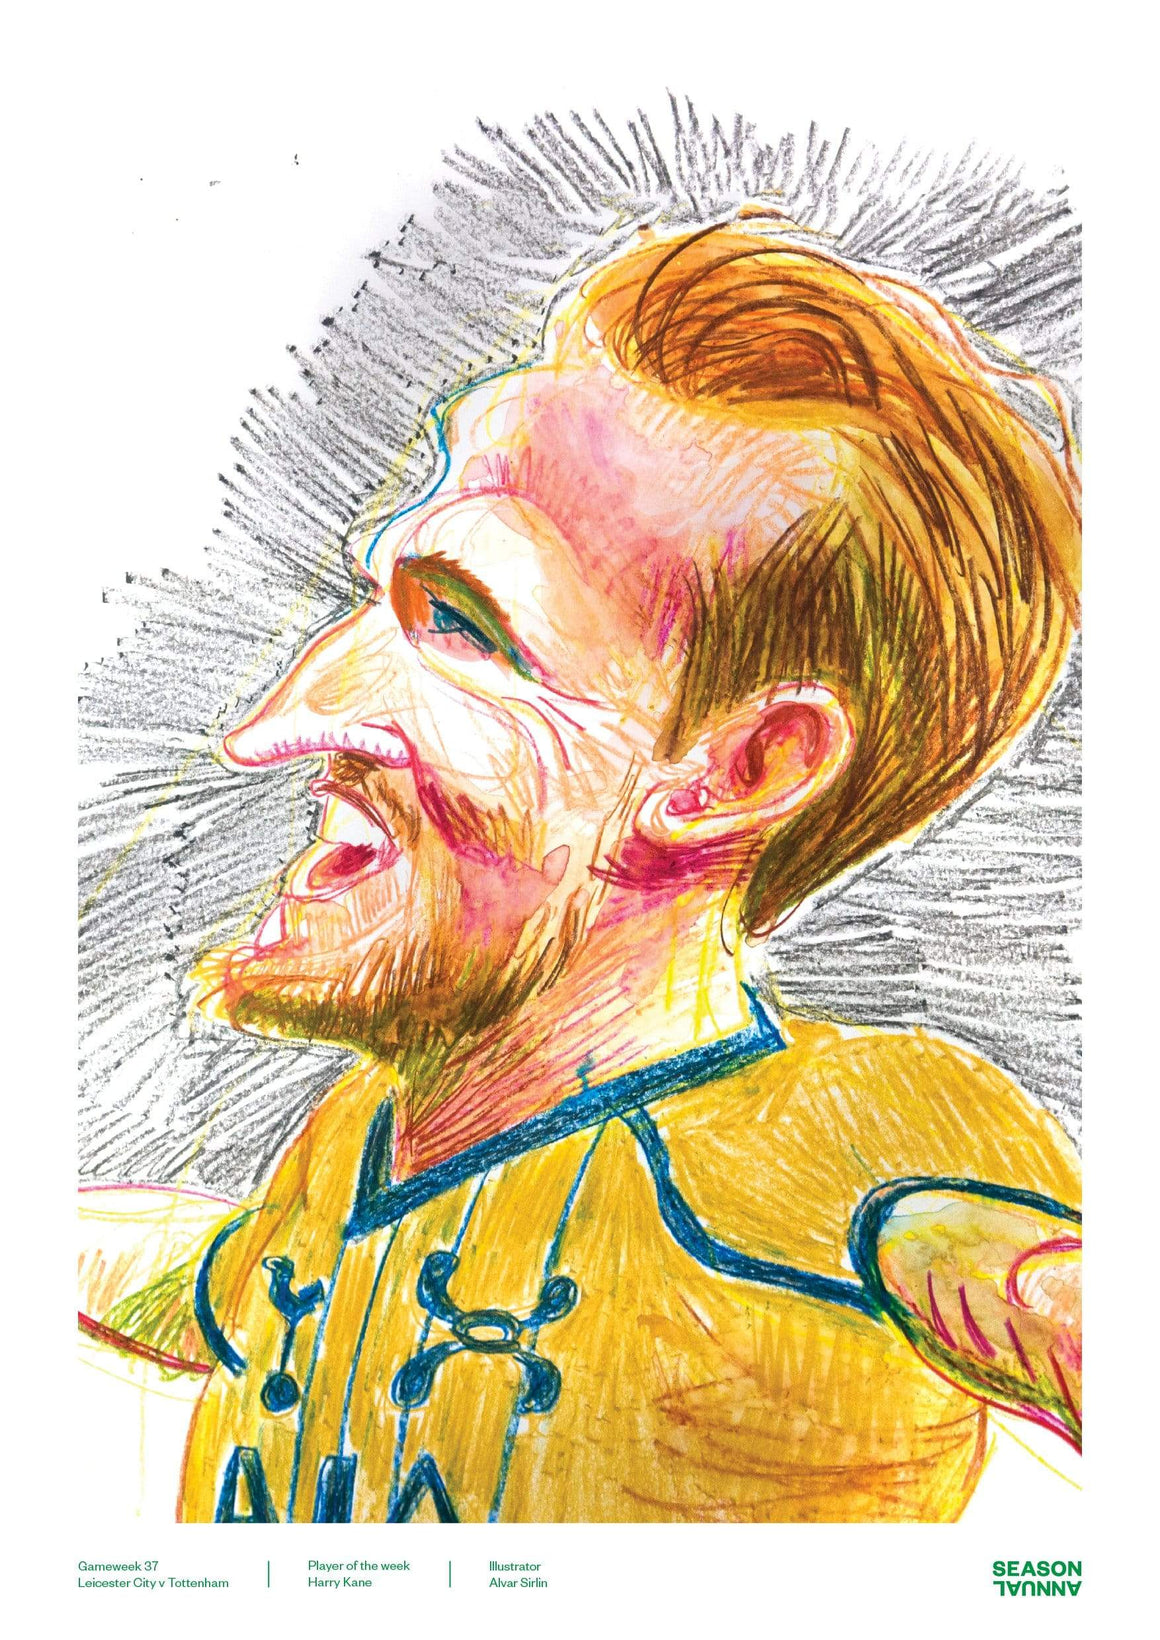 Season Annual A3 poster of Harry Kane celebrating his performance v Leicester City